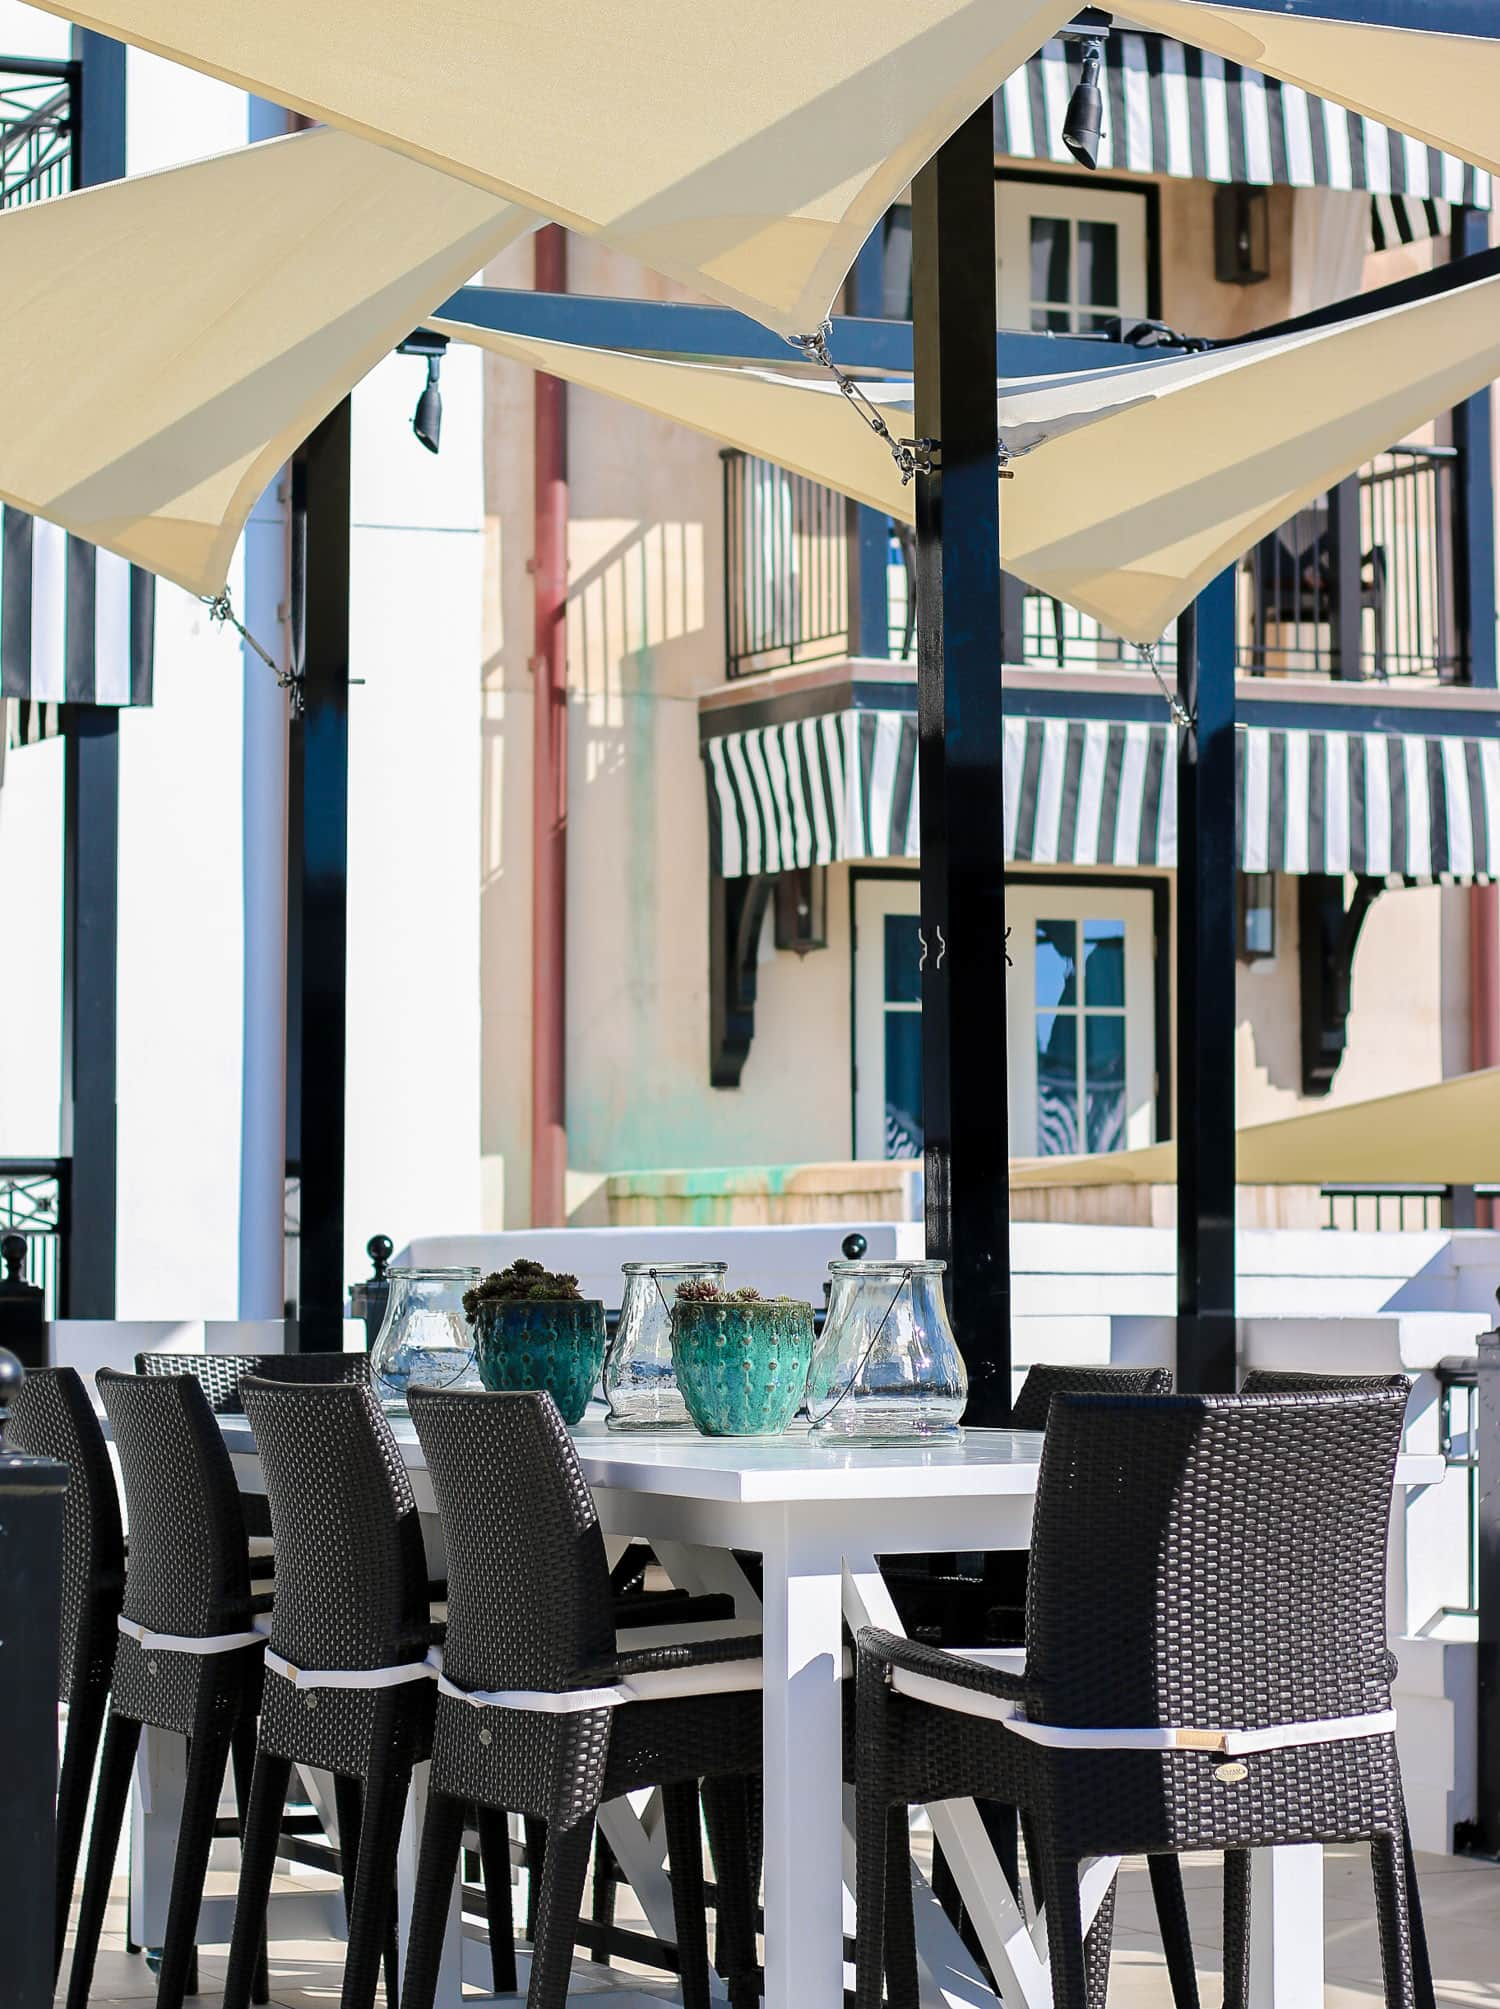 the-pearl-hotel-rooftop-lounge-rosemary-beach-florida-0579